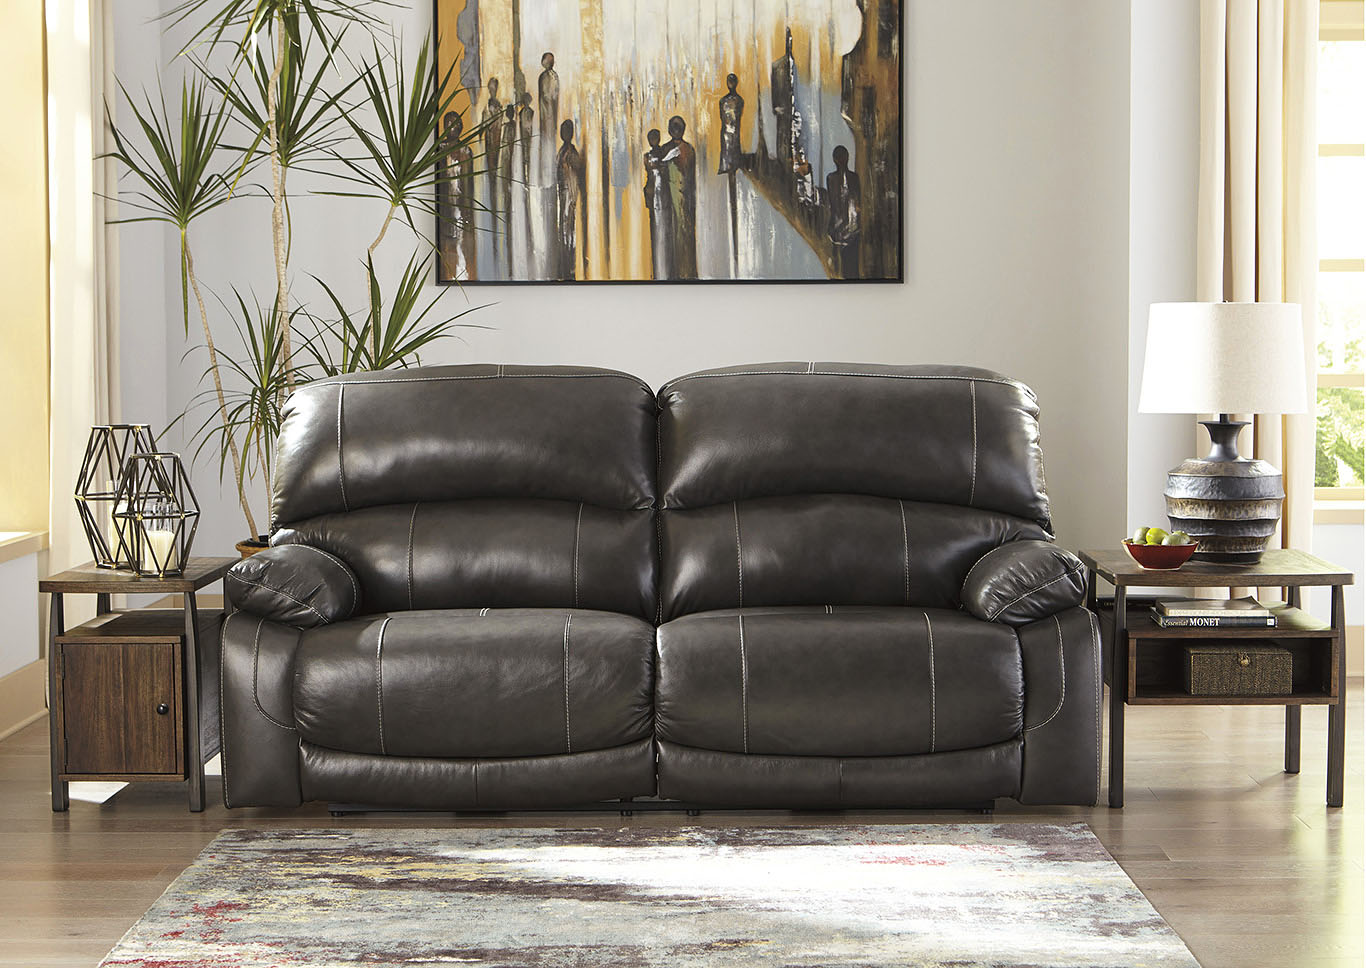 Hallstrung Gray 2 Seat Reclining Power Sofa,Signature Design By Ashley